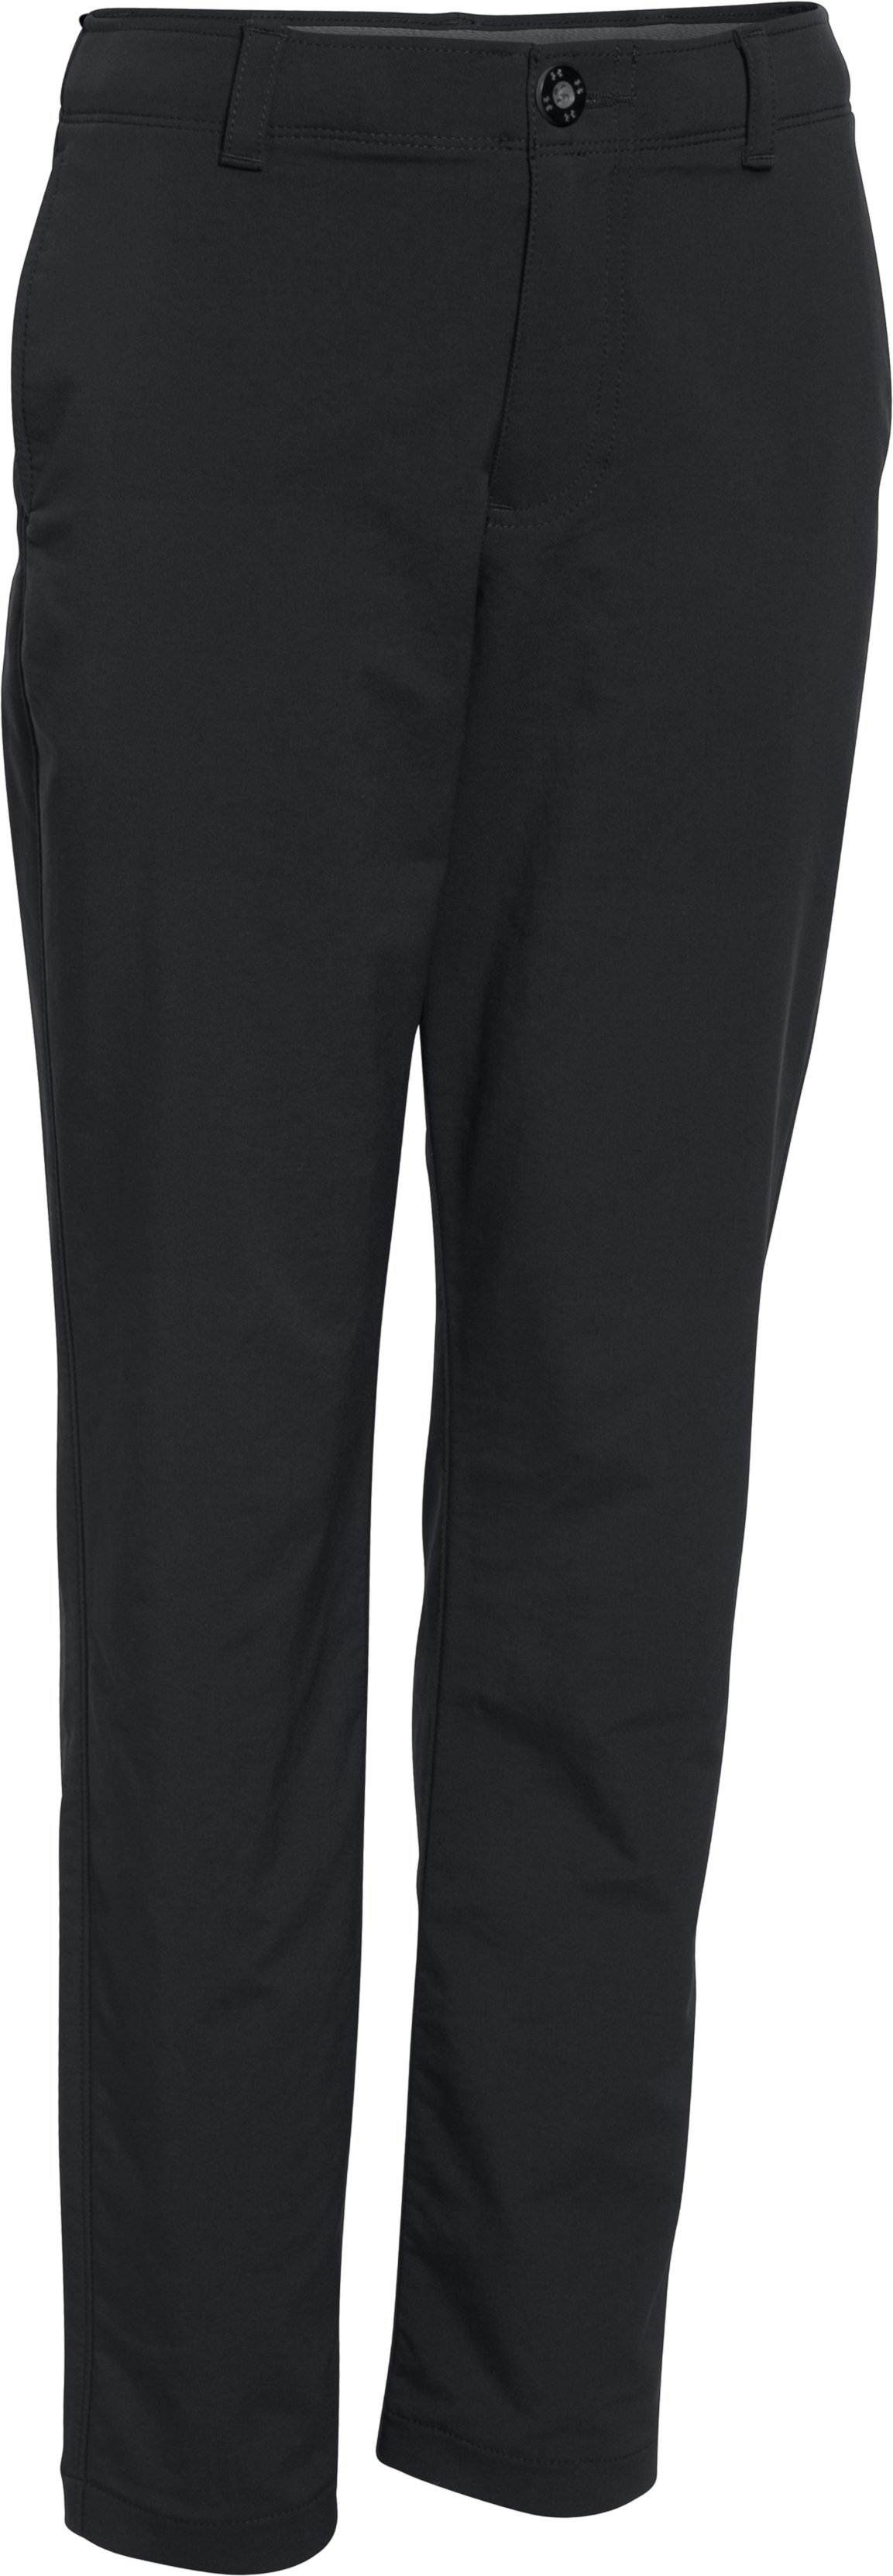 Boys' UA Match Play Pants, Black